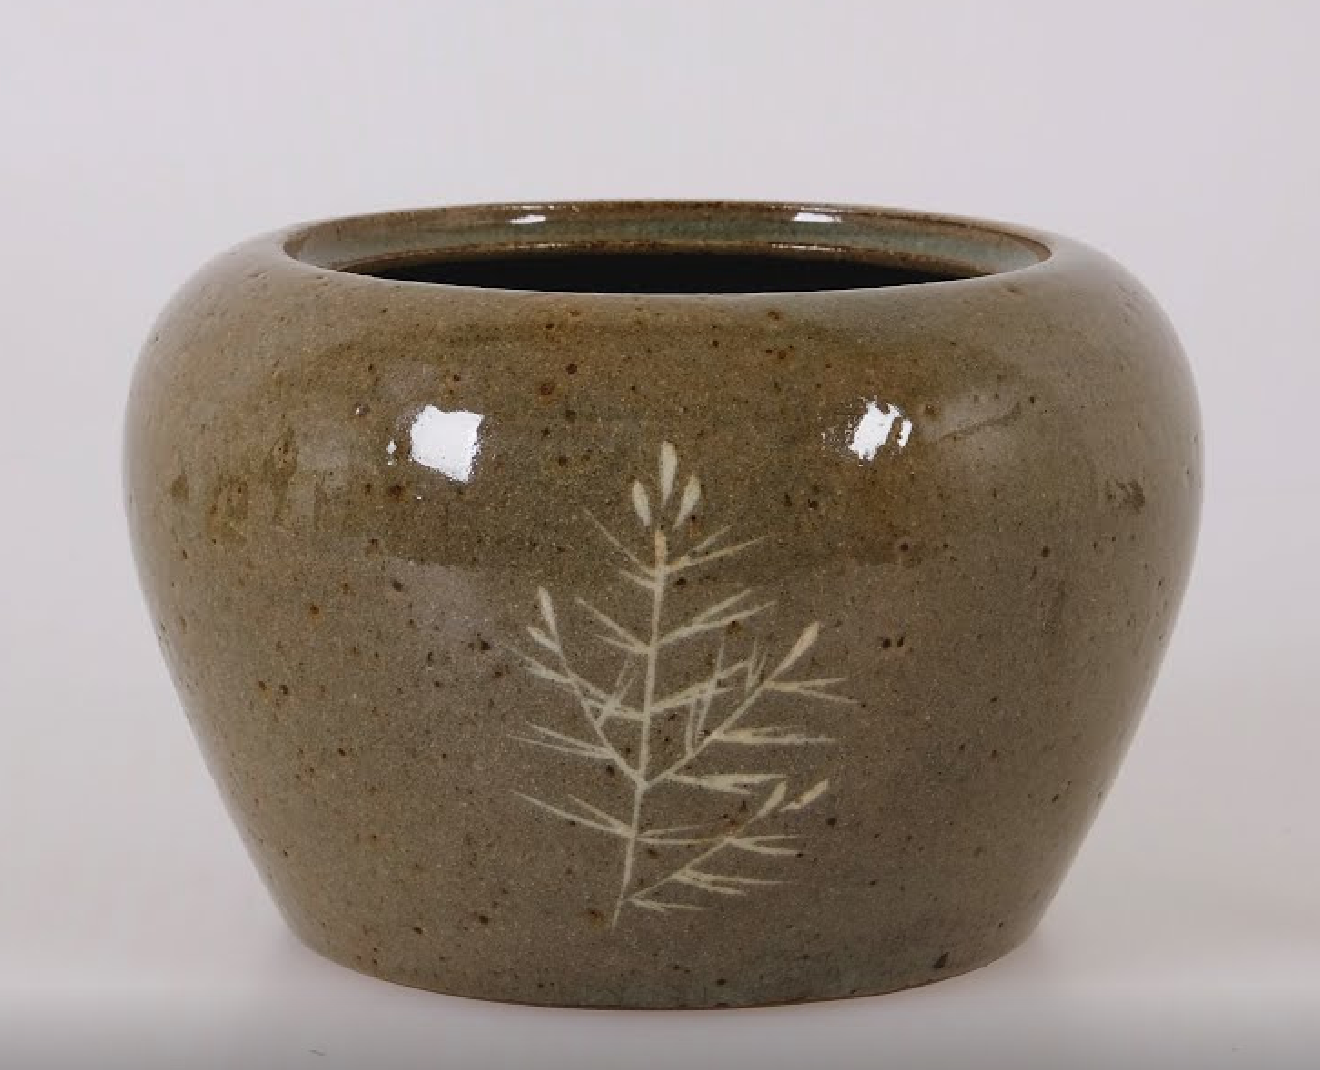 This mizusashi (water container for tea ceremony) with inlay of organized lines representing a young pine tree is exemplary of the type of fine inlay applied to Yatsushiro wares during the 19th century. Agano Noguma (1795-1871) Kyoto Women's University, Lifestyle Design Laboratory (Google Arts + Culture)